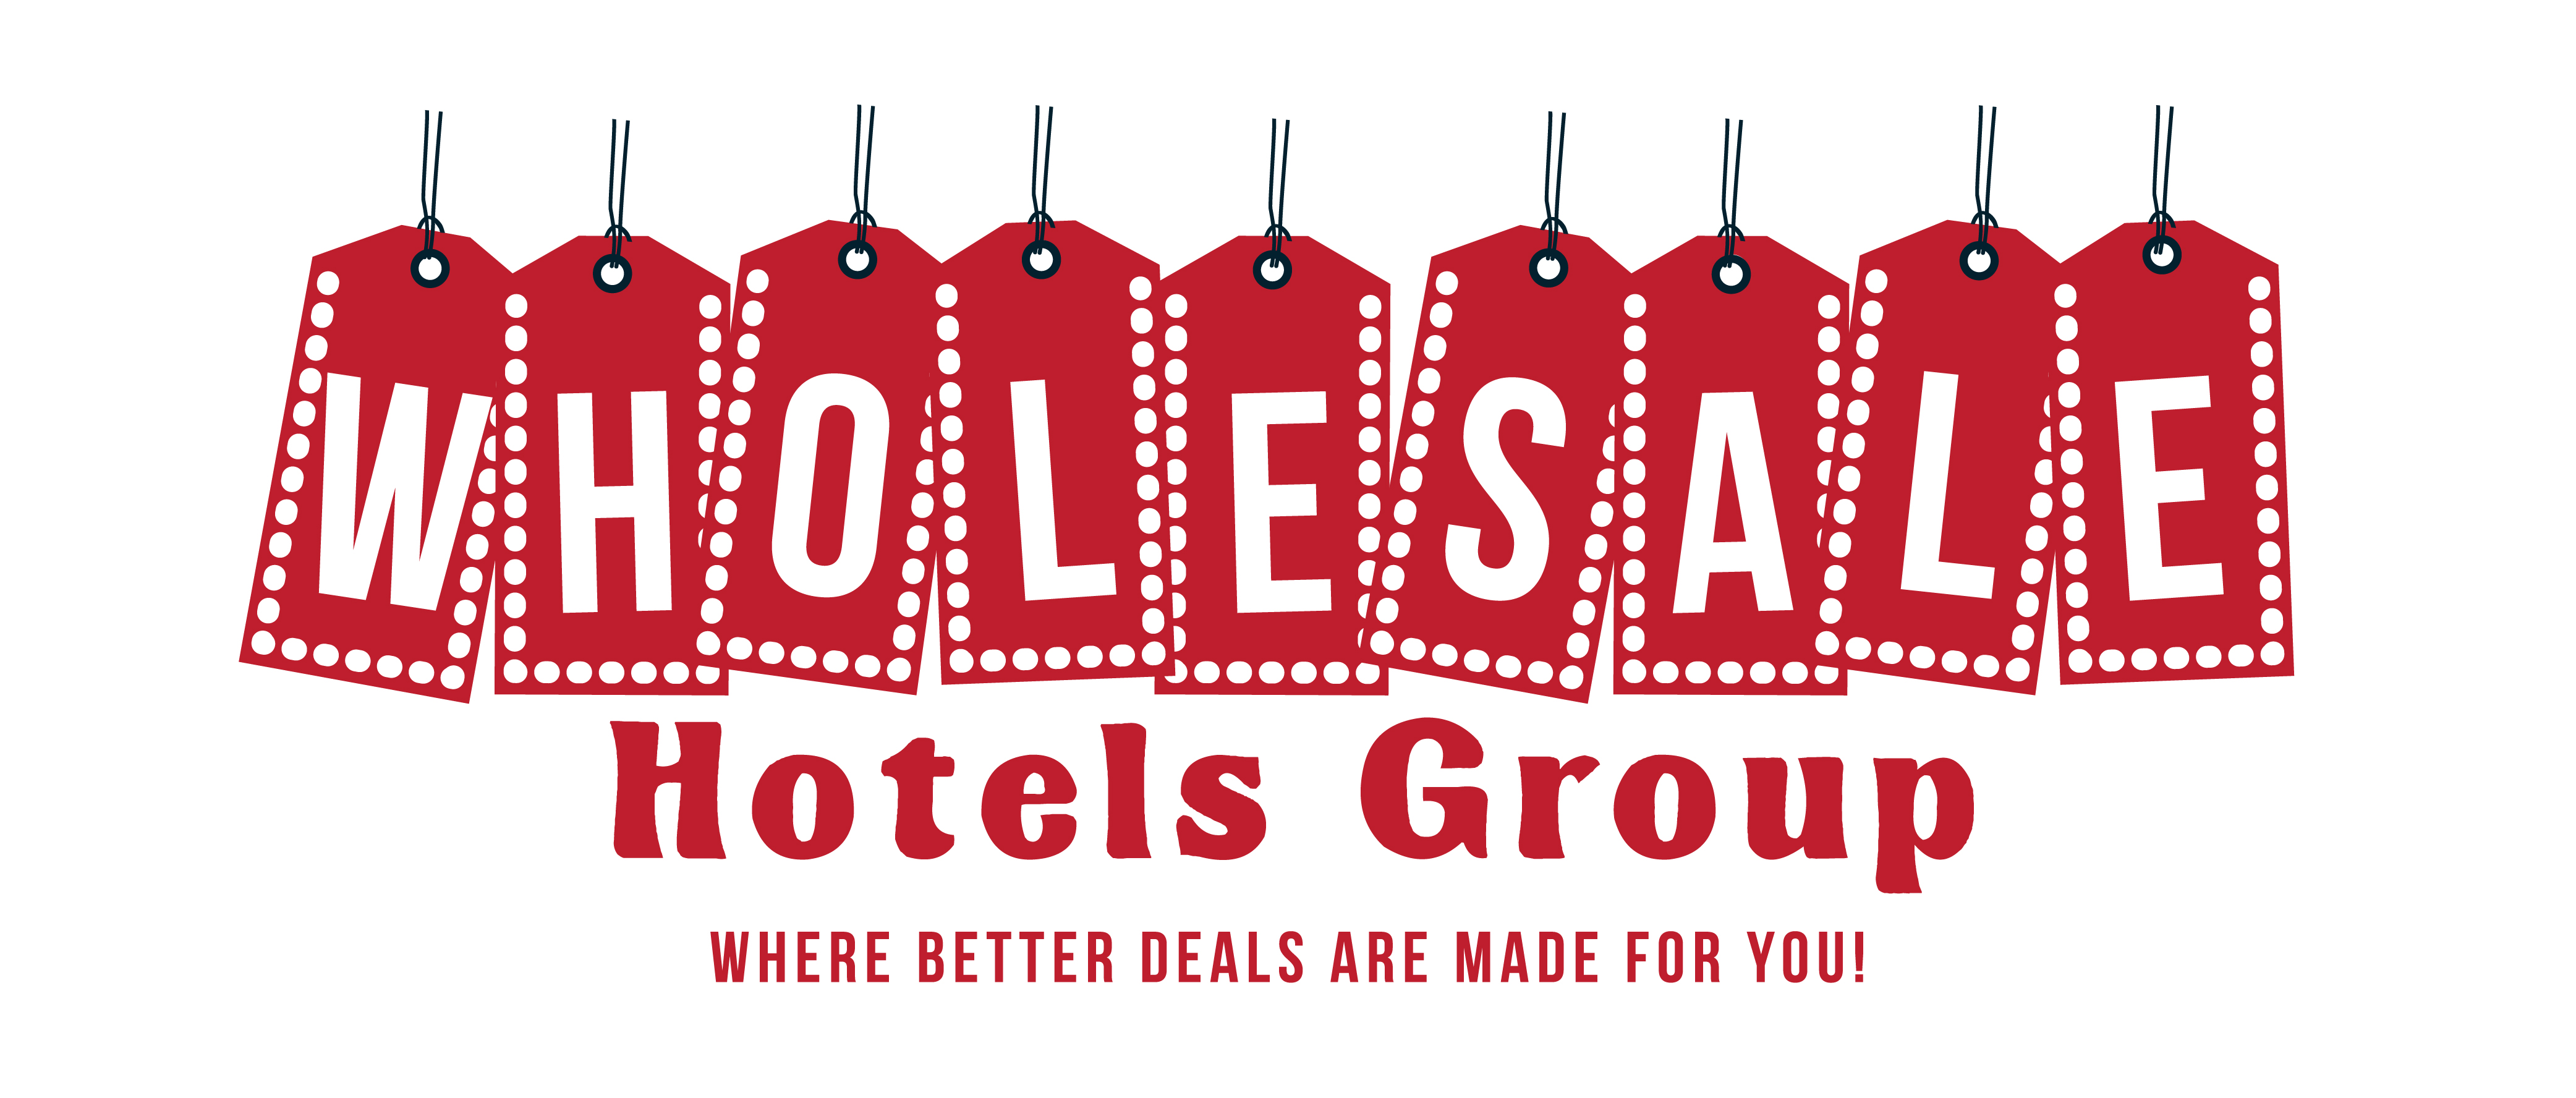 One of the best Hotel BedBanks: Wholesale Hotels Group